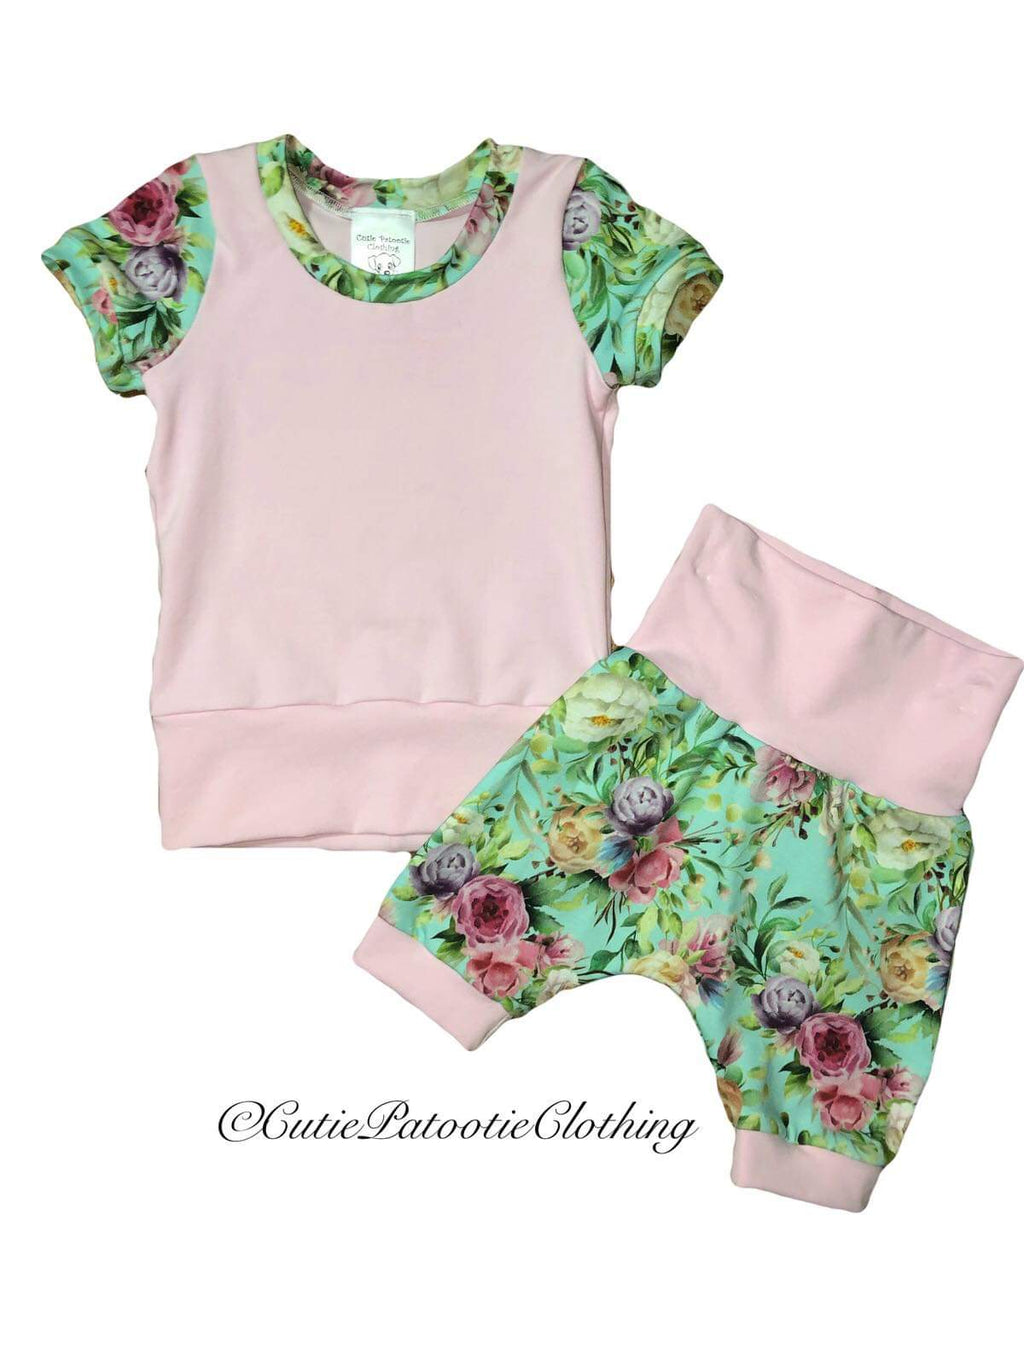 Cutie Patootie Clothing Co. - Grow T-shirt & Shorts Set (3m-12m)